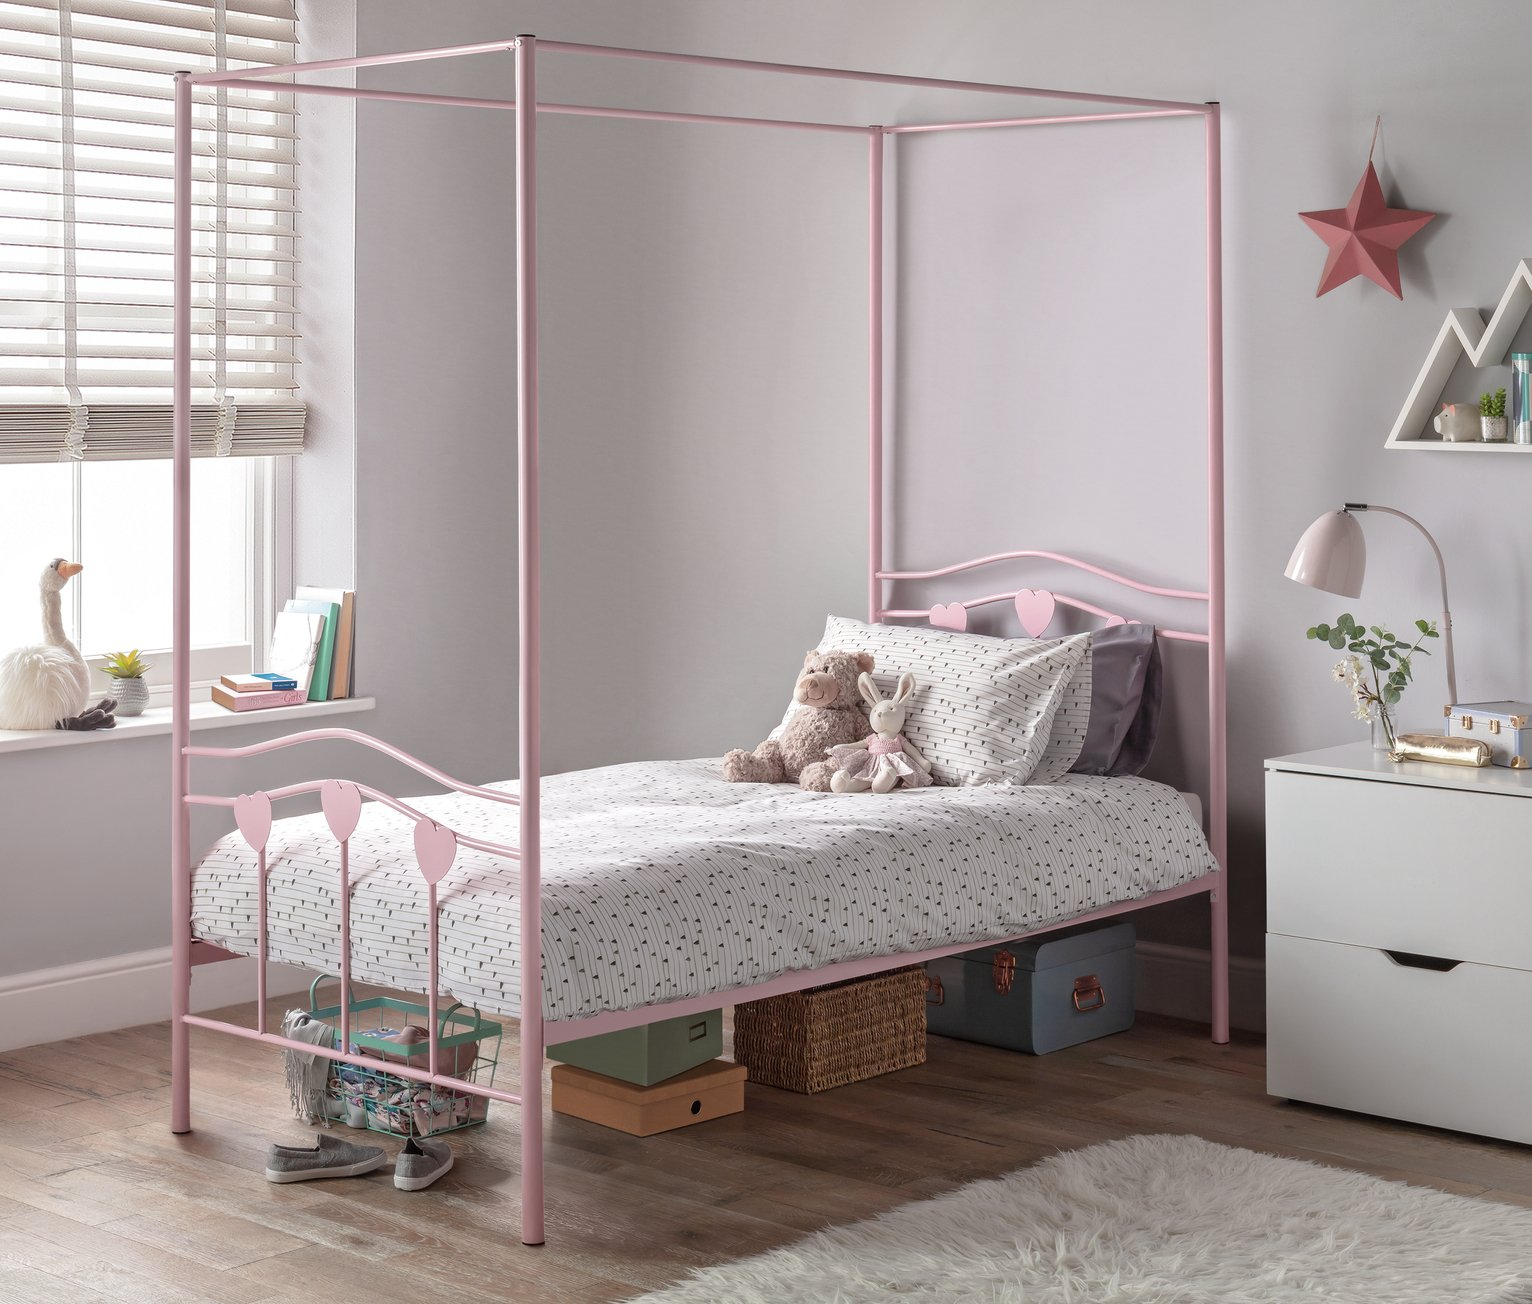 Argos Home Hearts Single 4 Poster Bed and Kids Mattress - Pi